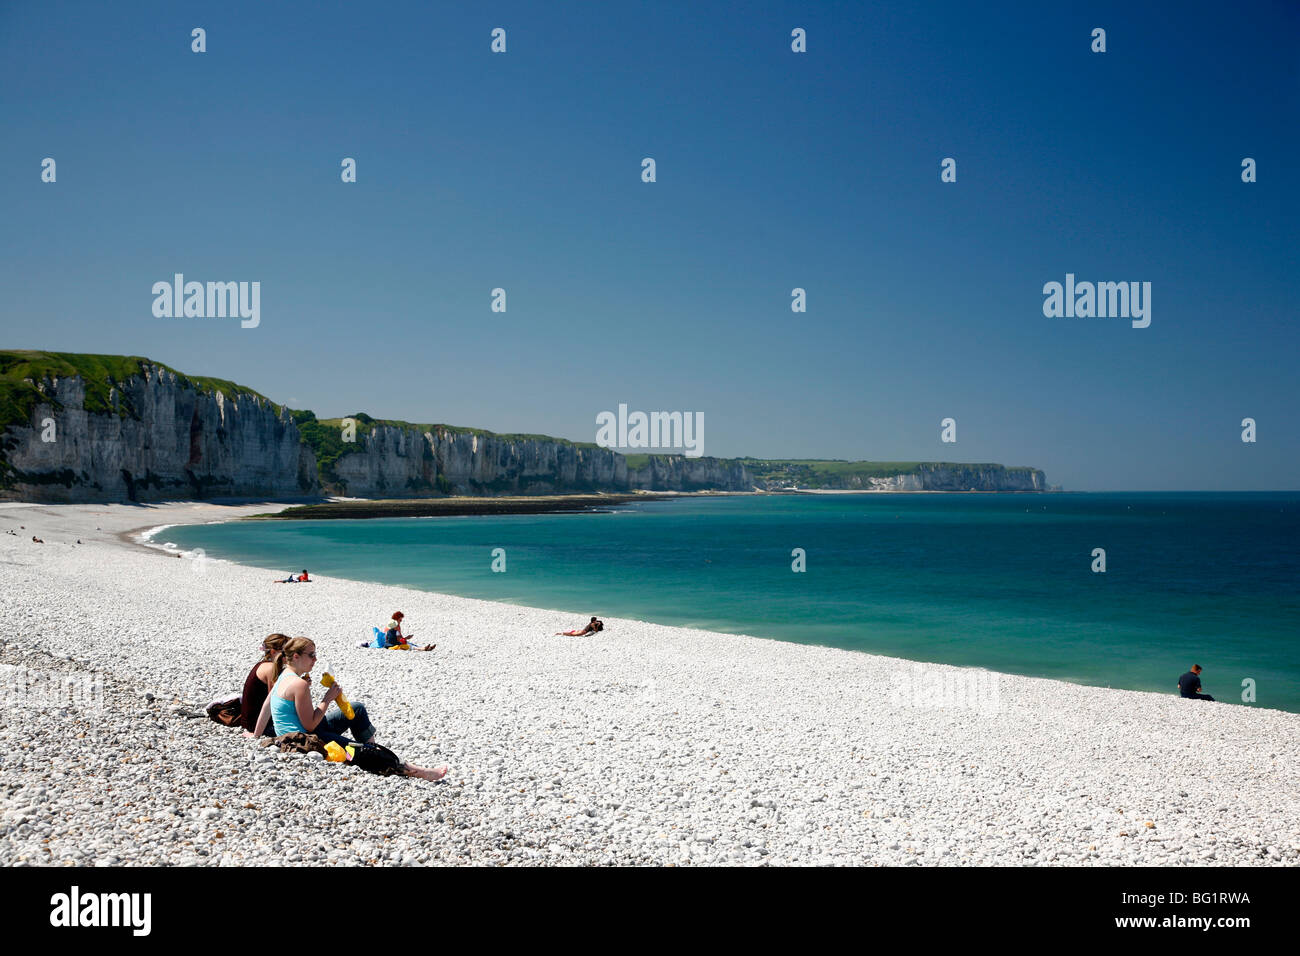 The beach at Fecamp, Cote d'Albatre, Normandy, France, Europe - Stock Image